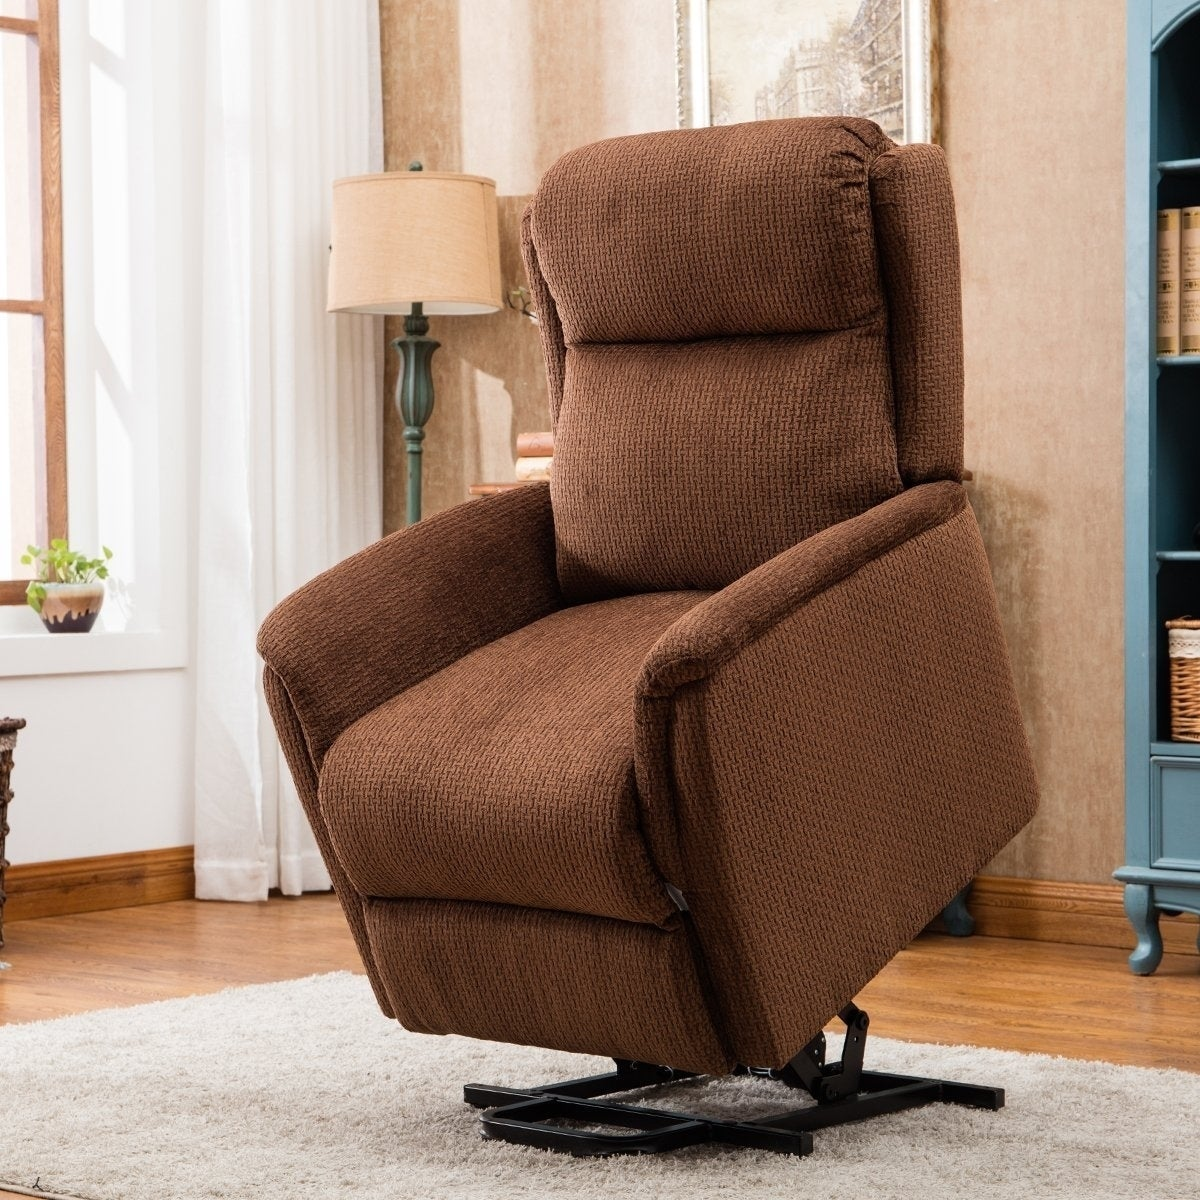 remote control recliners. Shop BONZY Lift Recliner Power Chair With Remote Control - CHOCOLATE Free Shipping Today Overstock.com 20098931 Recliners C